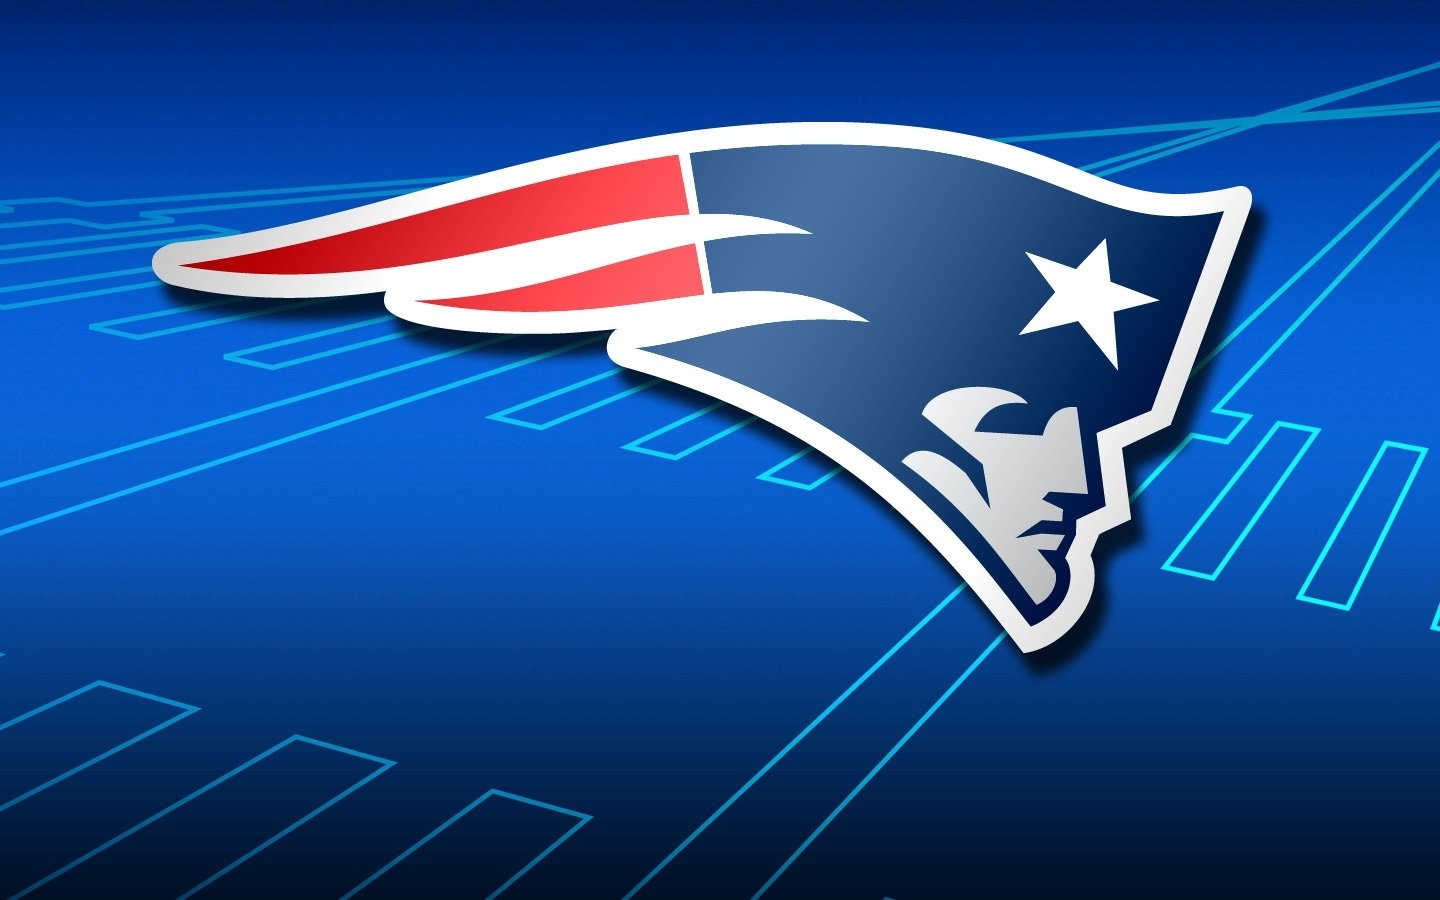 62 New England Patriots HD Wallpapers Background Images 1440x900